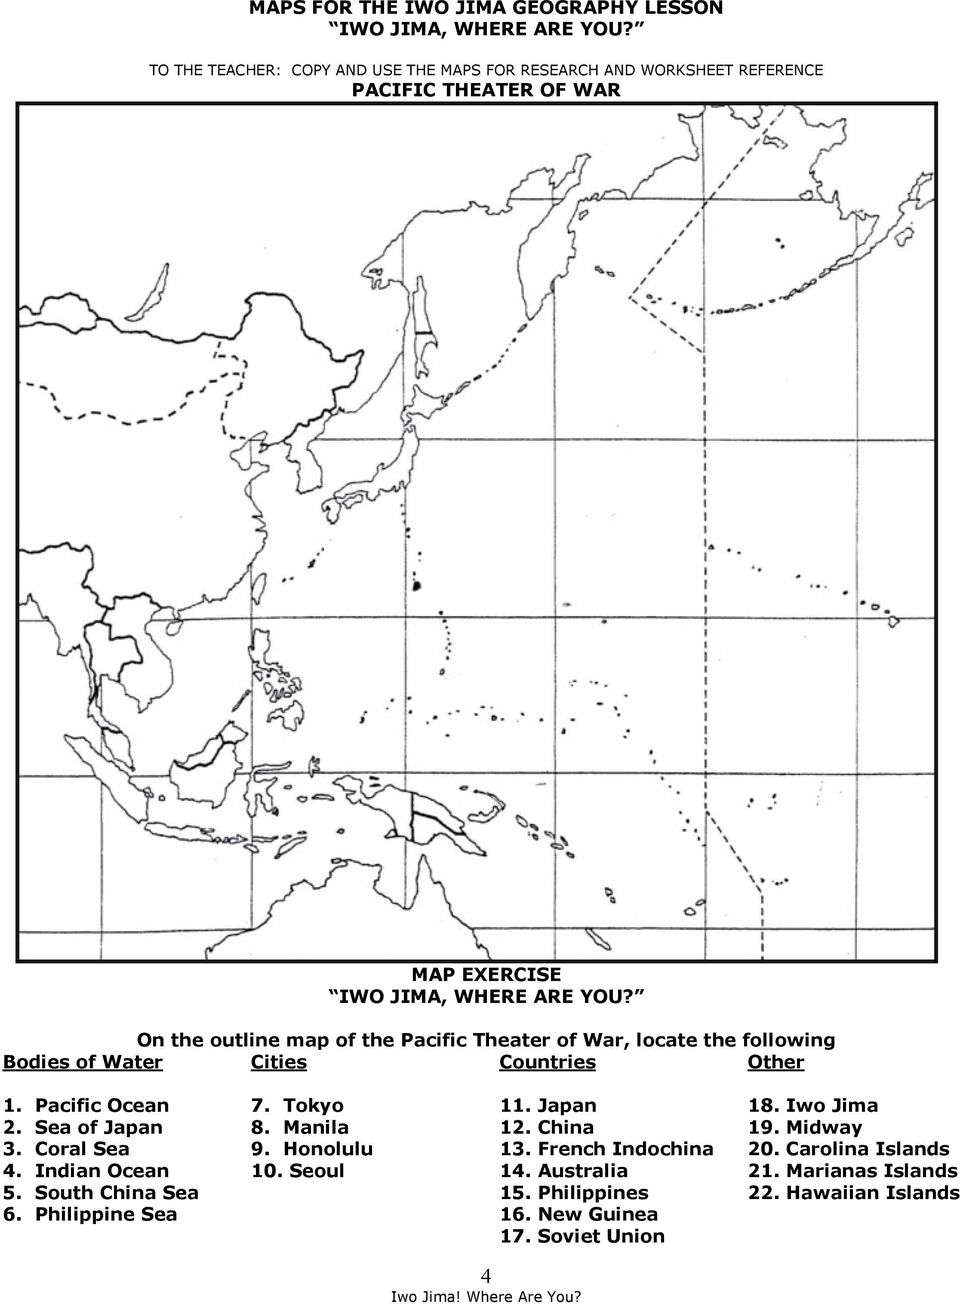 On the outline map of the Pacific Theater of War, locate the following Bodies of Water Cities Countries Other 1. Pacific Ocean 2. Sea of Japan 3. Coral Sea 4.